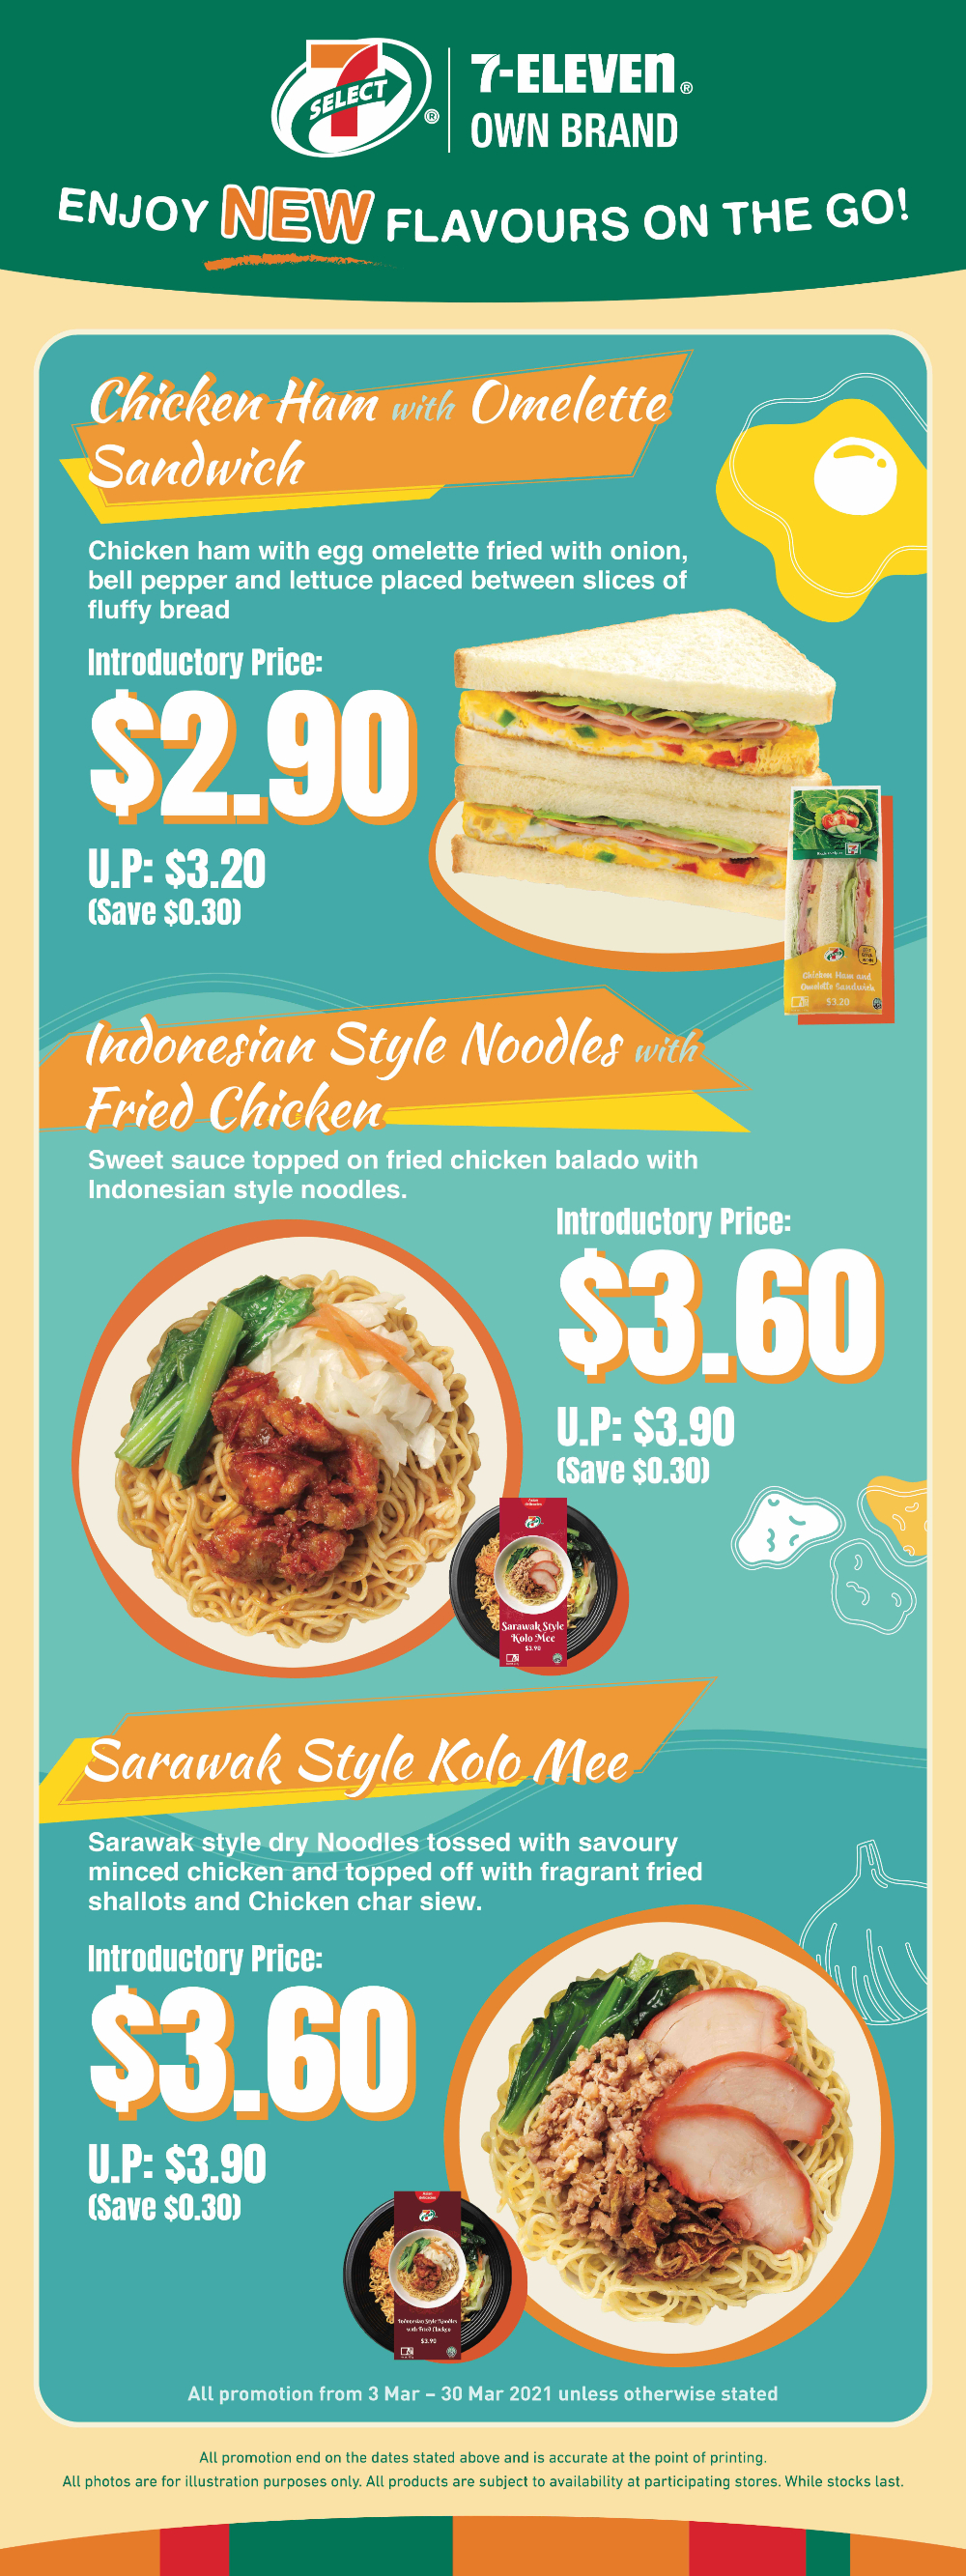 Taste the World with 7-Elevens Latest Additions to its Very Own 7-SELECT Ready-to-Eat Range. First Stop Southeast Asia